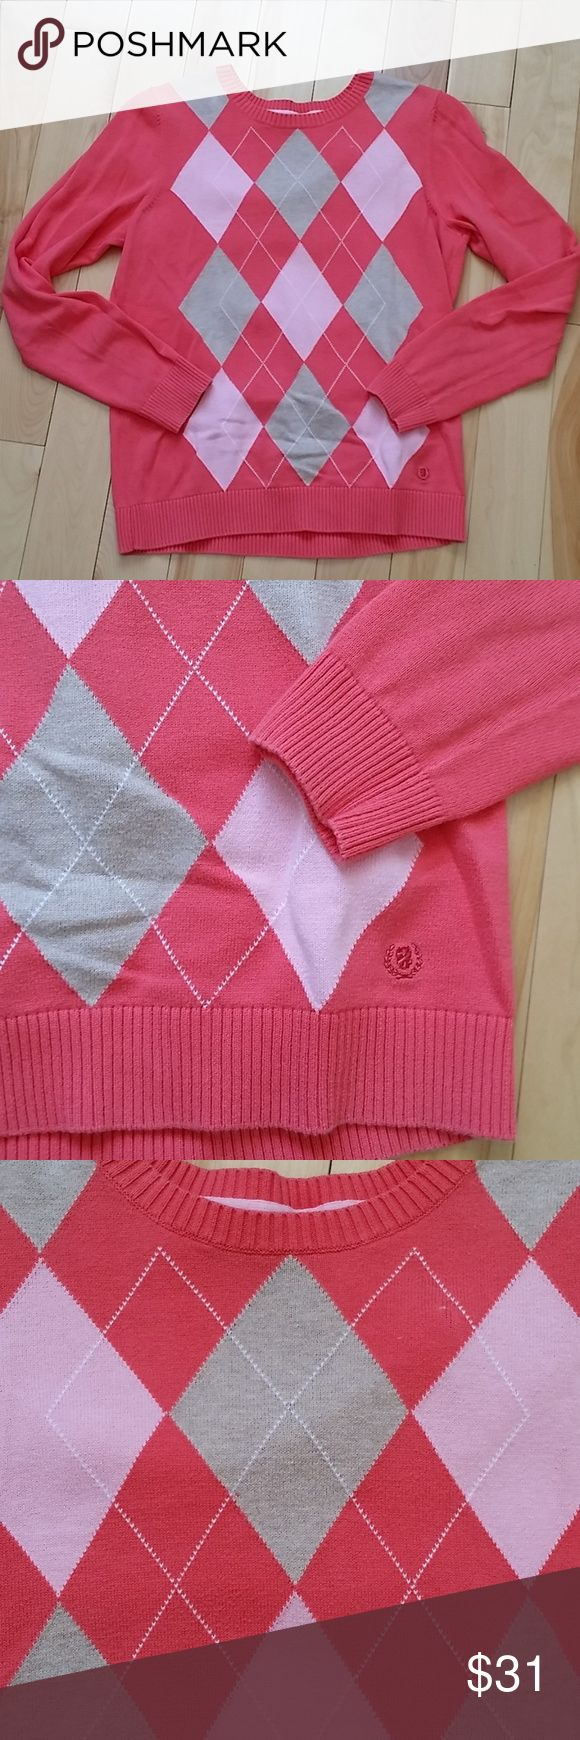 IZOD CORAL CREWNECK SWEATER WOMENS IZOD Womens sweater. The color is coral, pink and toupe. Soft material.  Size medium. Izod Sweaters Crew & Scoop Necks